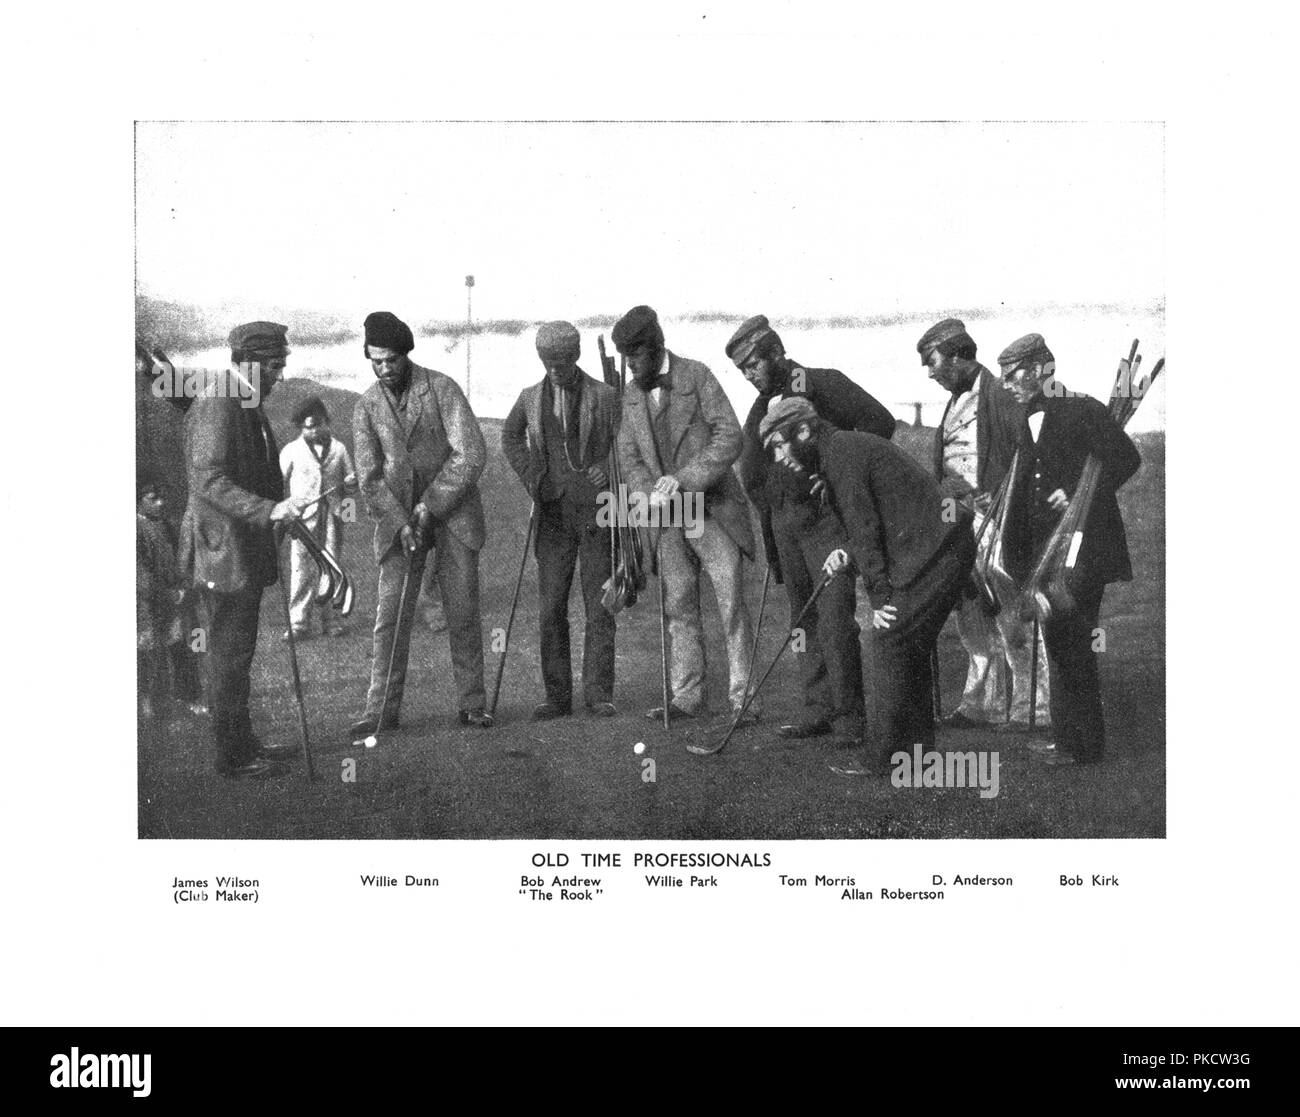 'Old Time Professionals', c1850s. Lithographic reproduction of a photograph taken c1850, showing Scottish golfers James Wilson (Club Maker), Willie Dunn, Bob Andrew The Rook, Willie Park, Tom Morris, Allan Robertson, D Anderson and Bob Kirk. - Stock Image